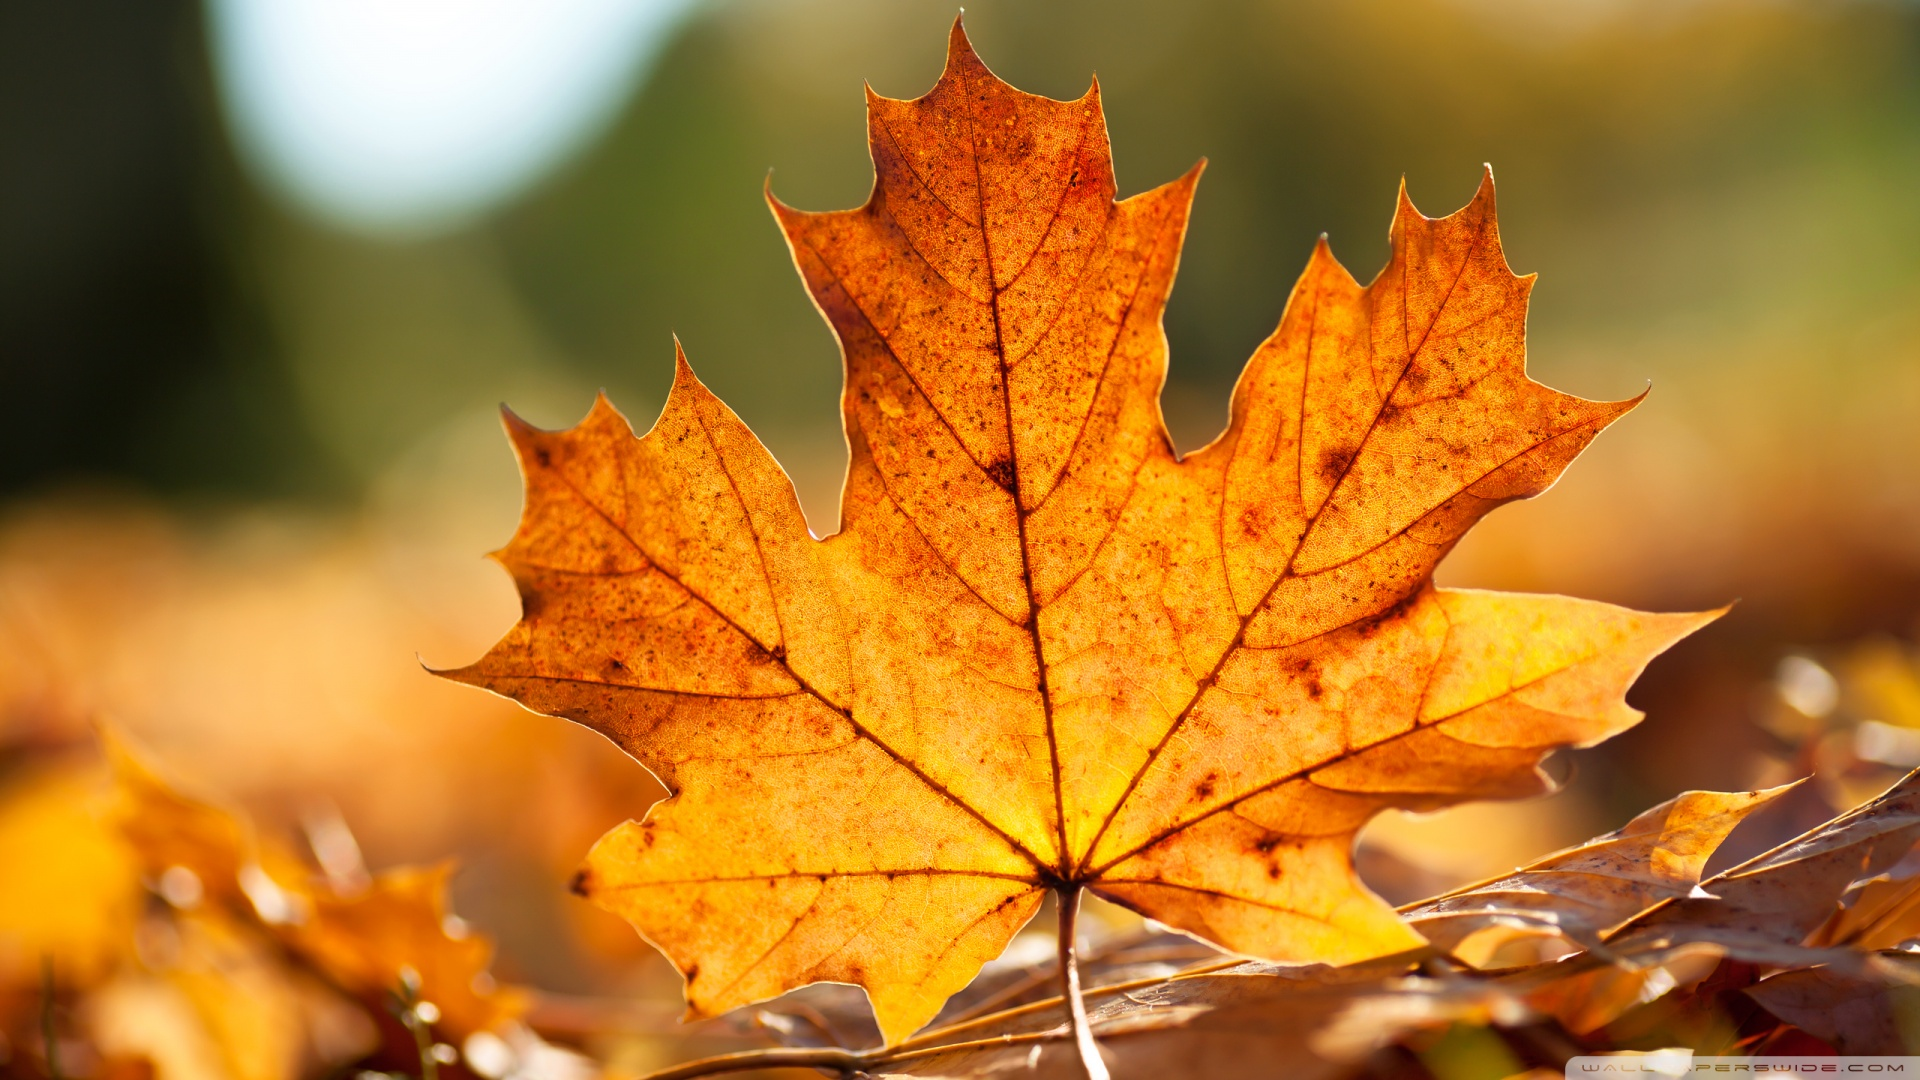 Fall Foliage Wallpaper Widescreen Autumn Leaves Wallpapers High Quality Download Free